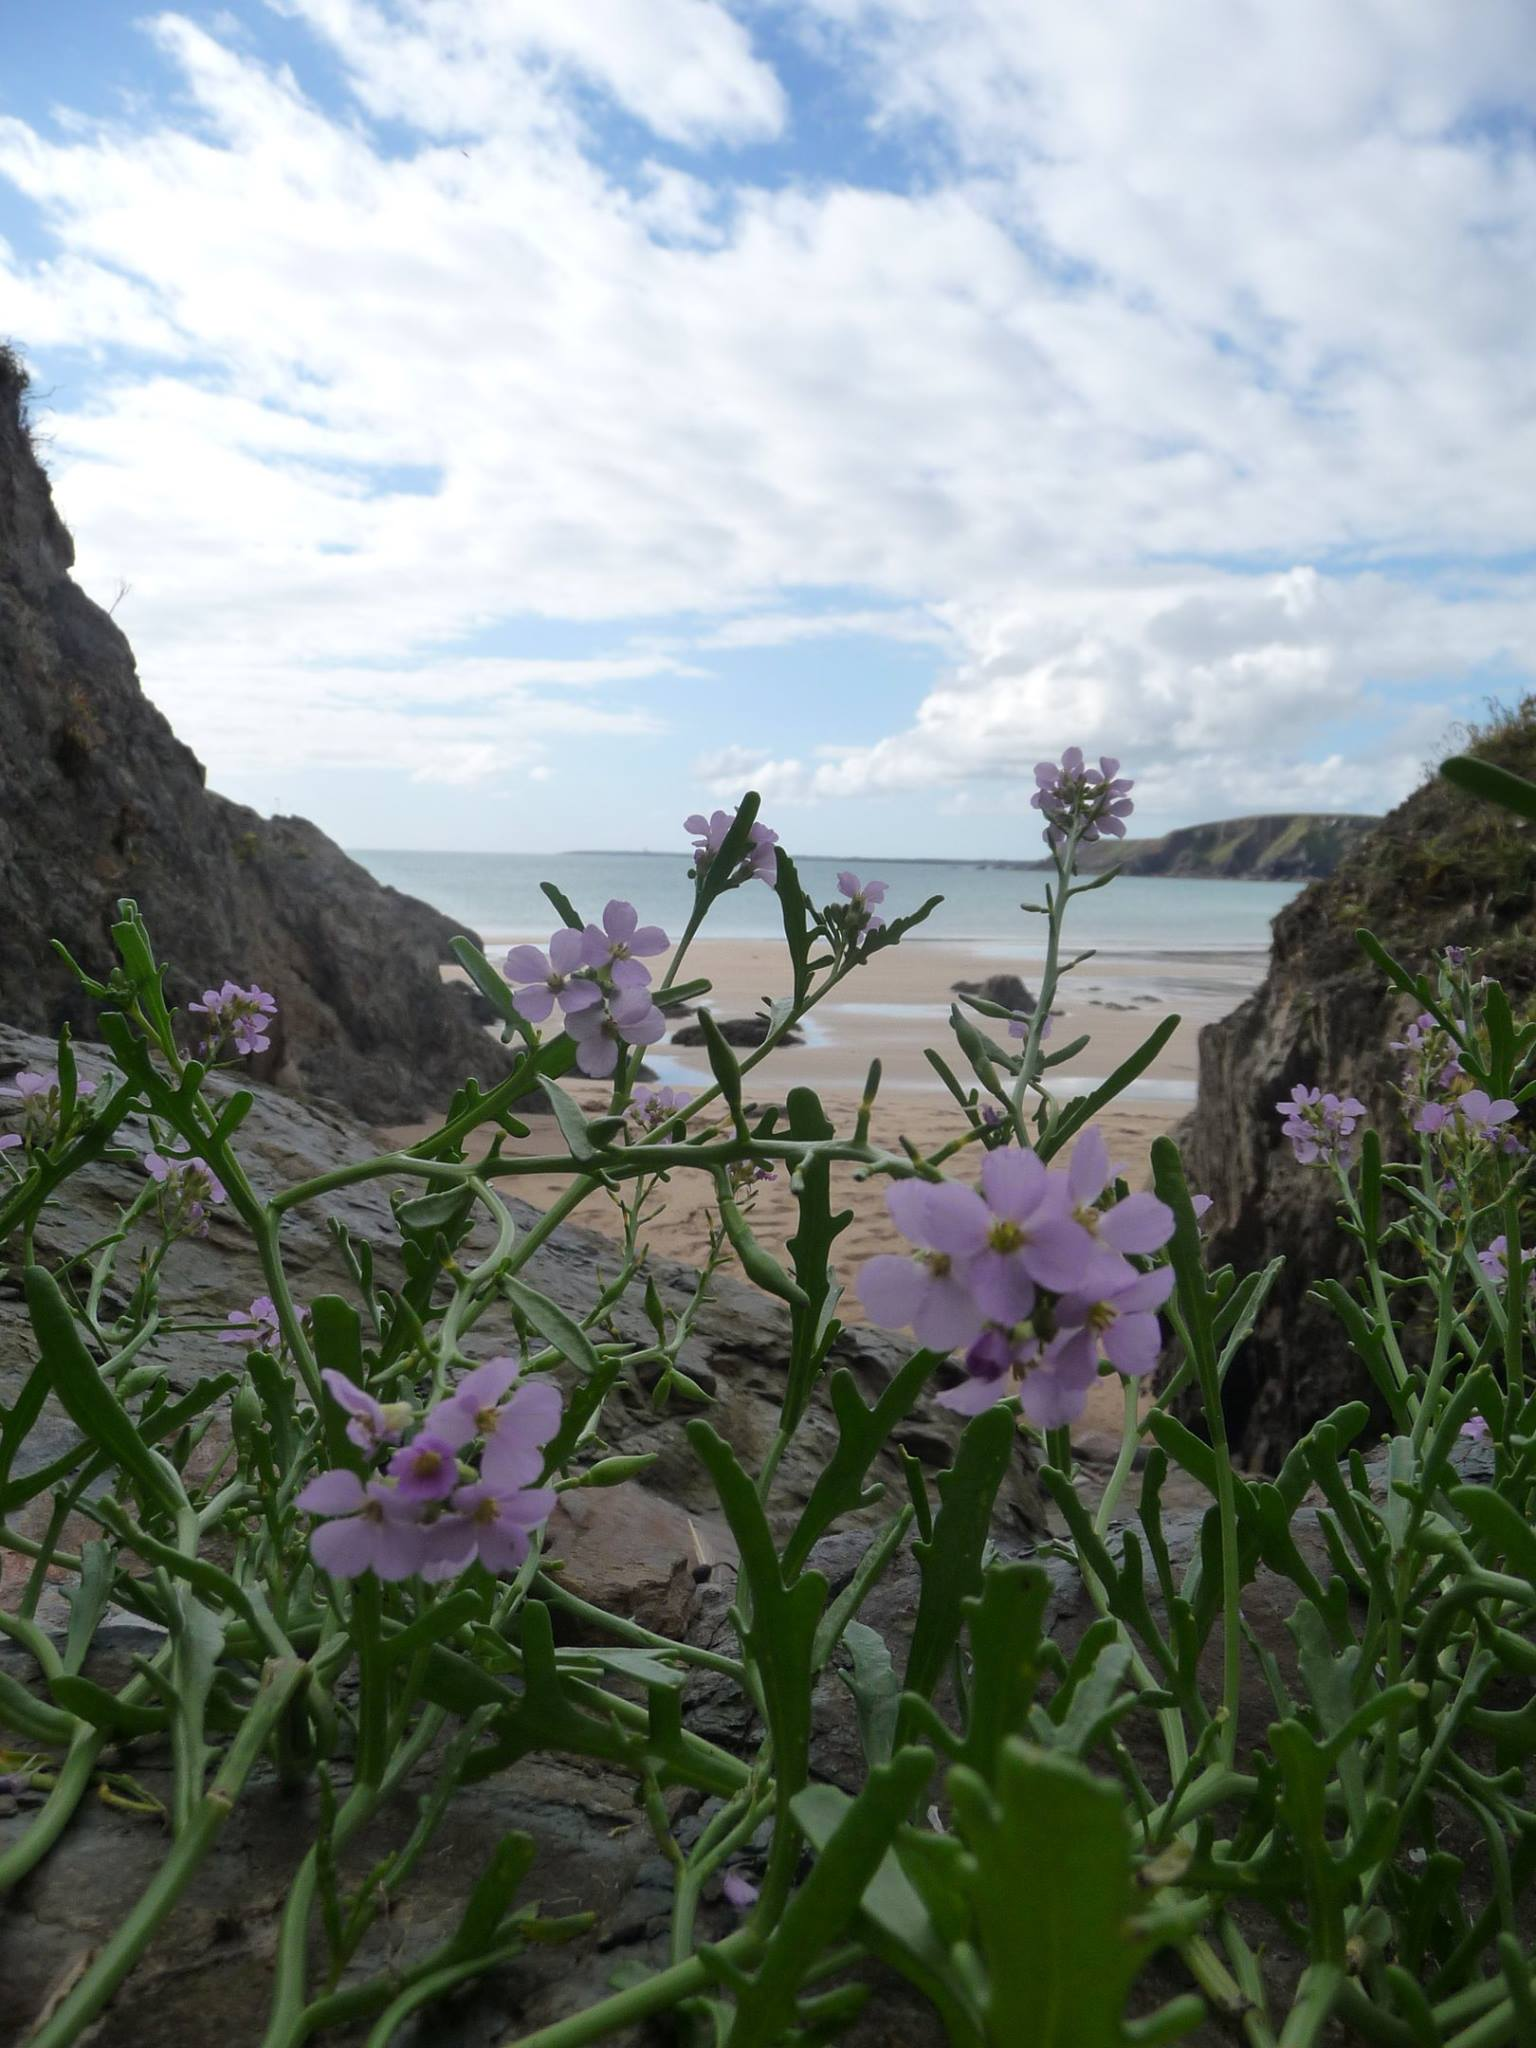 A pink flower on a green stemed plant with a beach and ocean in the background